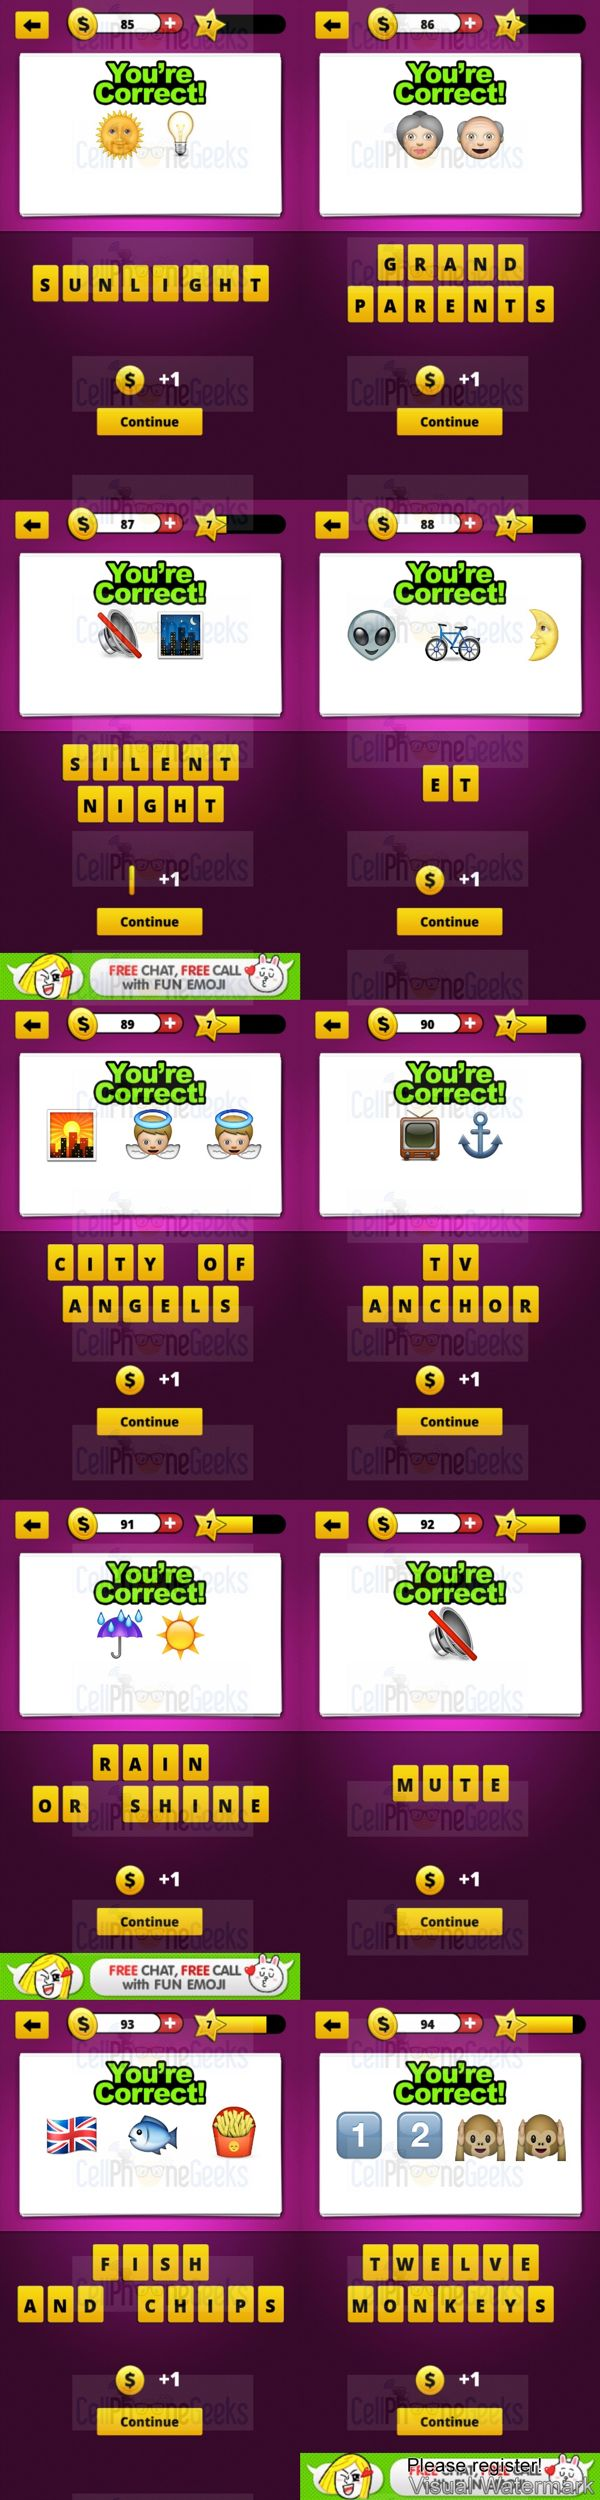 Guess The Emoji Level 7 Answers Cellphonegeeks Guess The Emoji Answers Guess The Emoji Emoji Answers